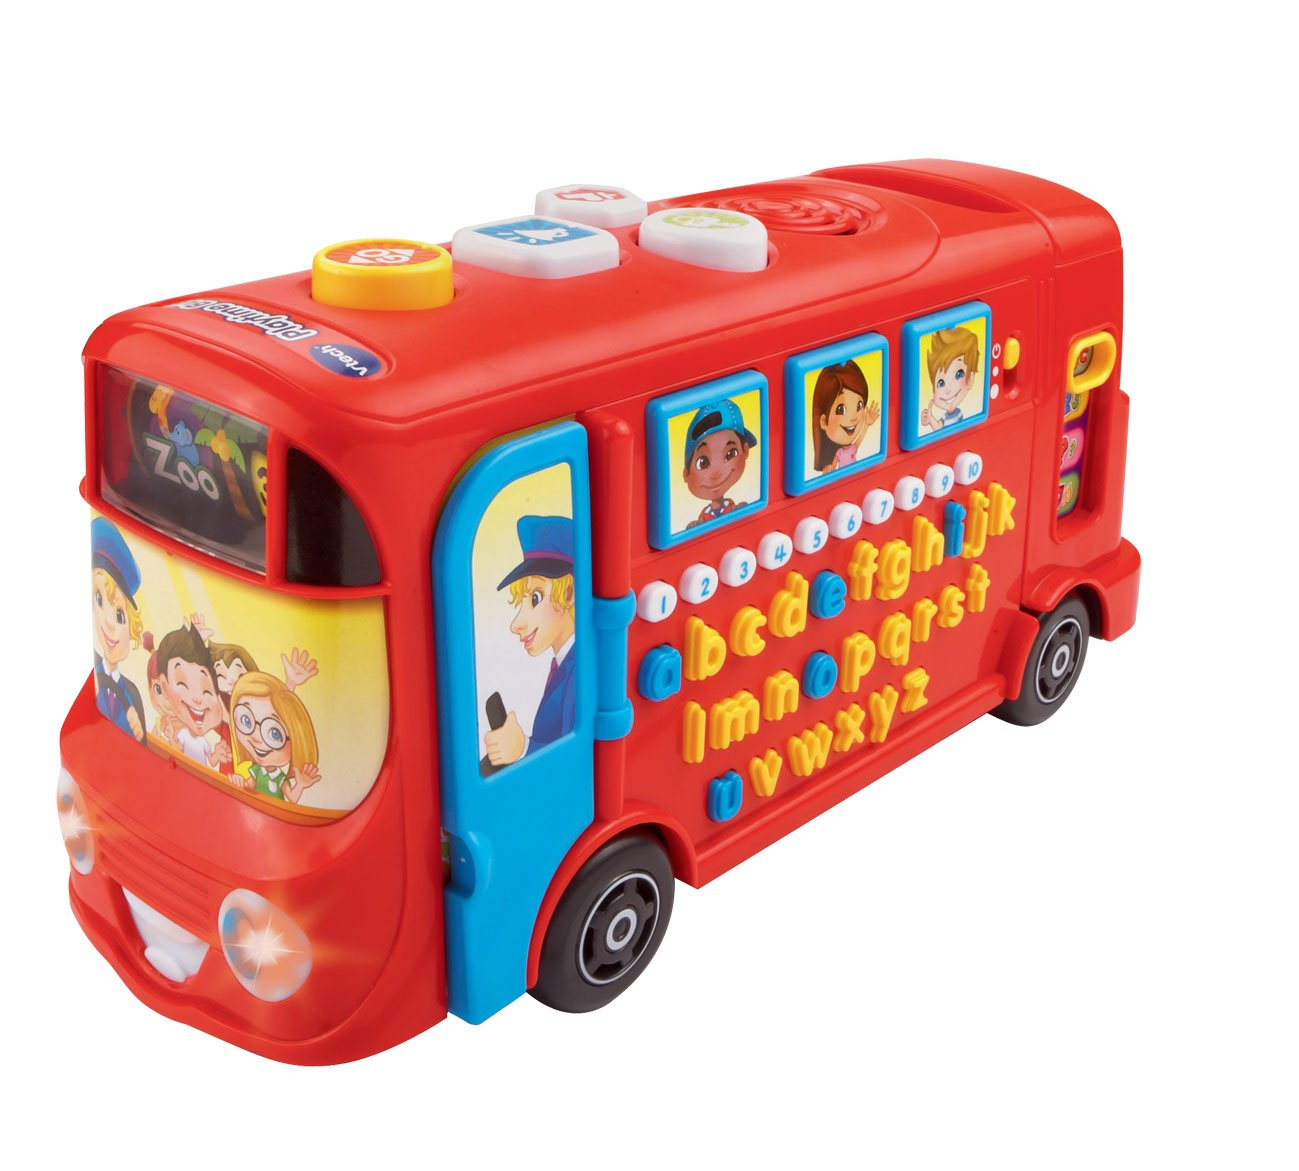 VTech 150003 Playtime Bus Educational Playset Suitable From 18 Months